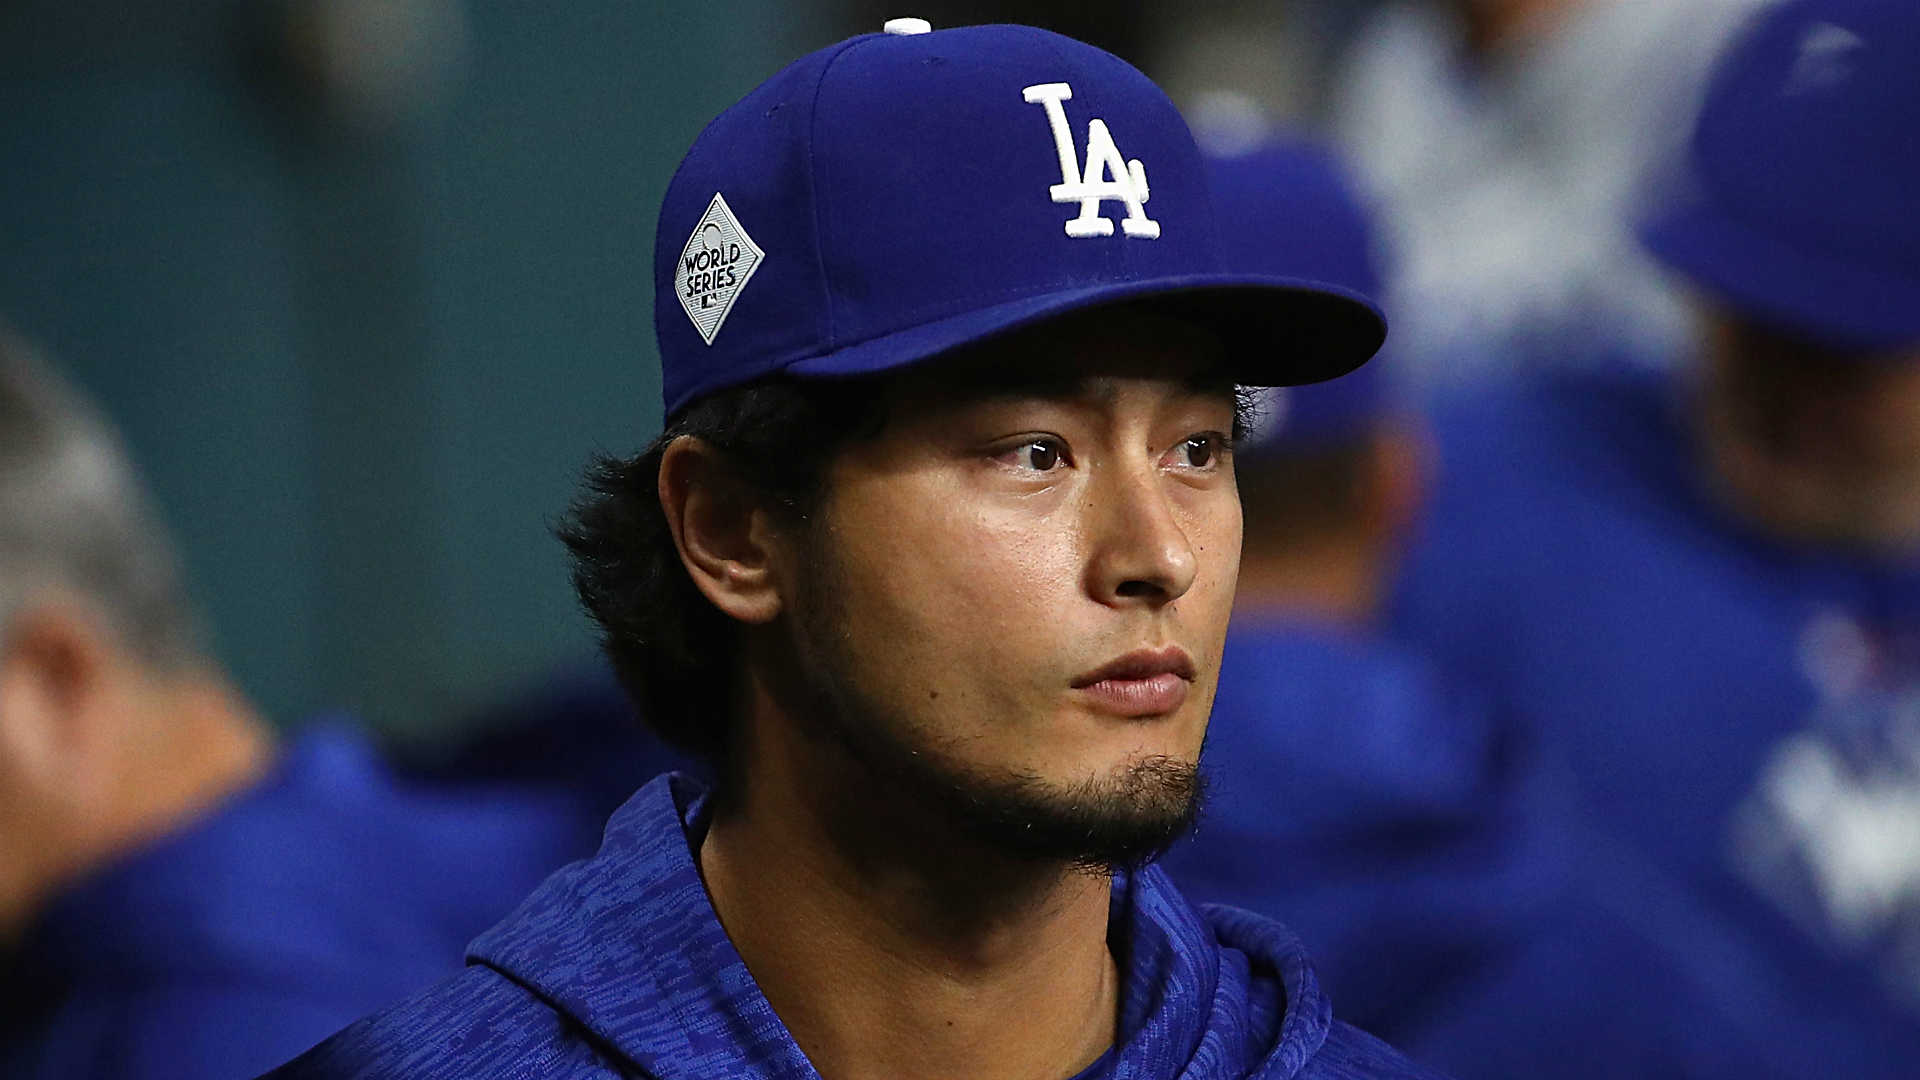 Yu Darvish, Cubs agree to 6-year deal worth $126 million